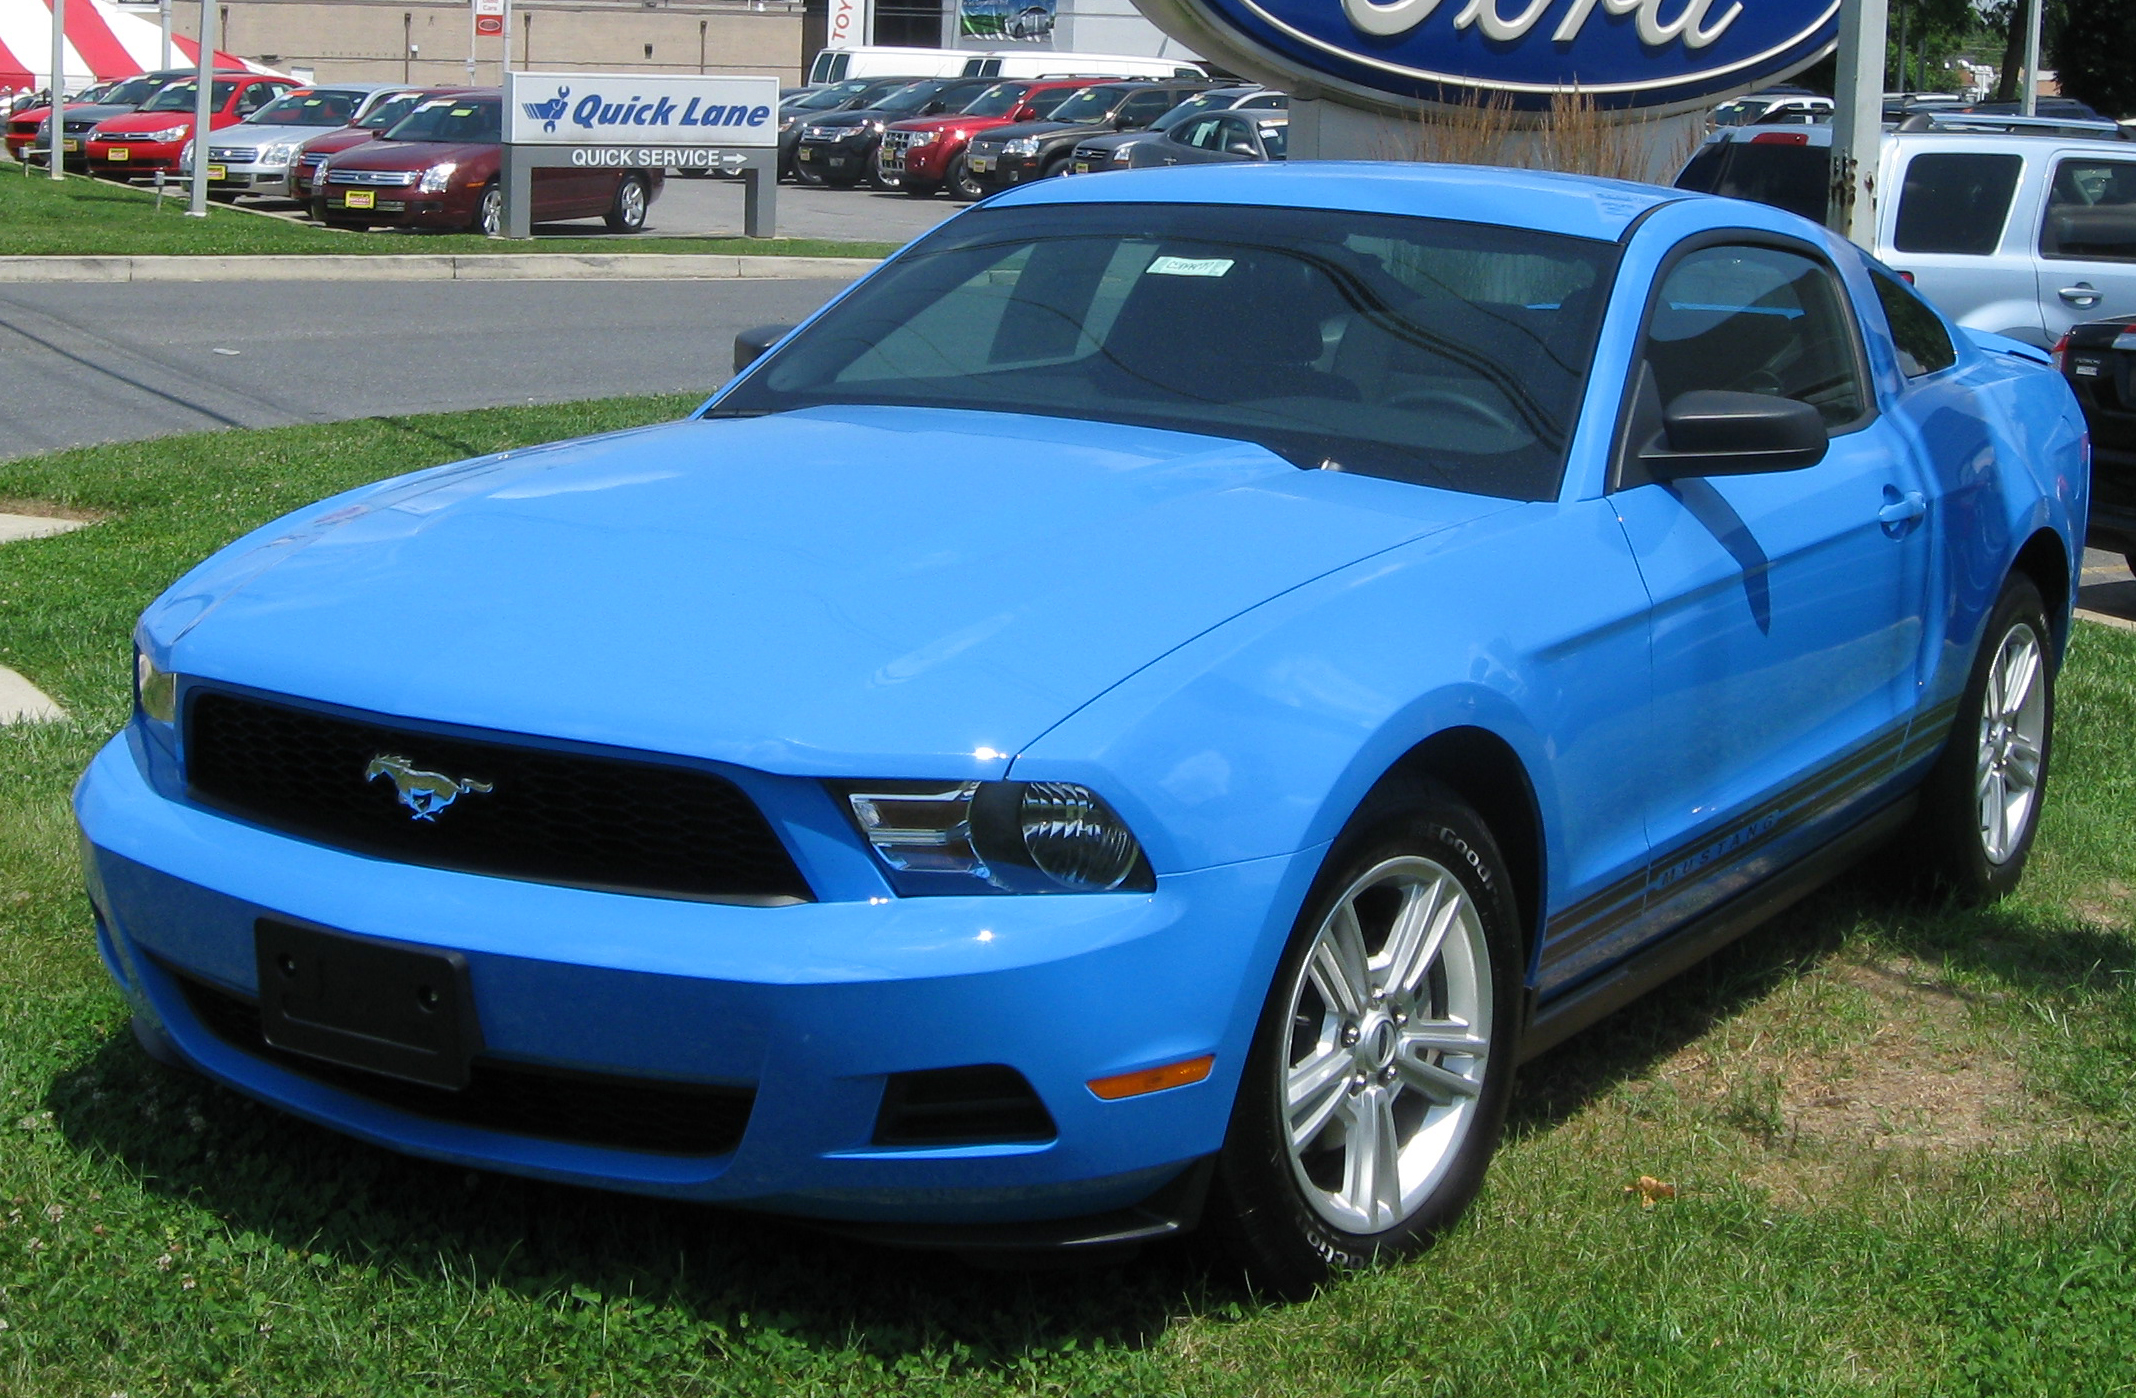 2009 Ford Mustang Blue Ford Mustang v6 Coupé 2009